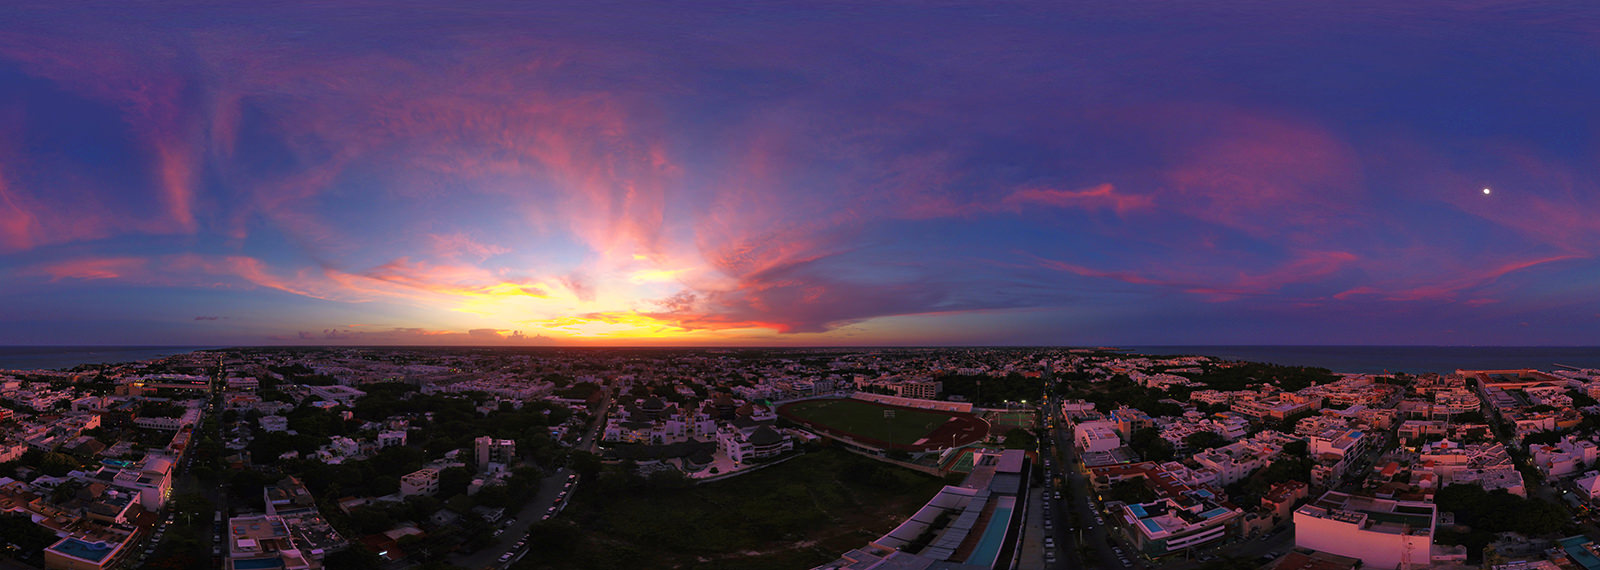 Sunset in Playa del Carmen, Riviera Maya - Virtual tour